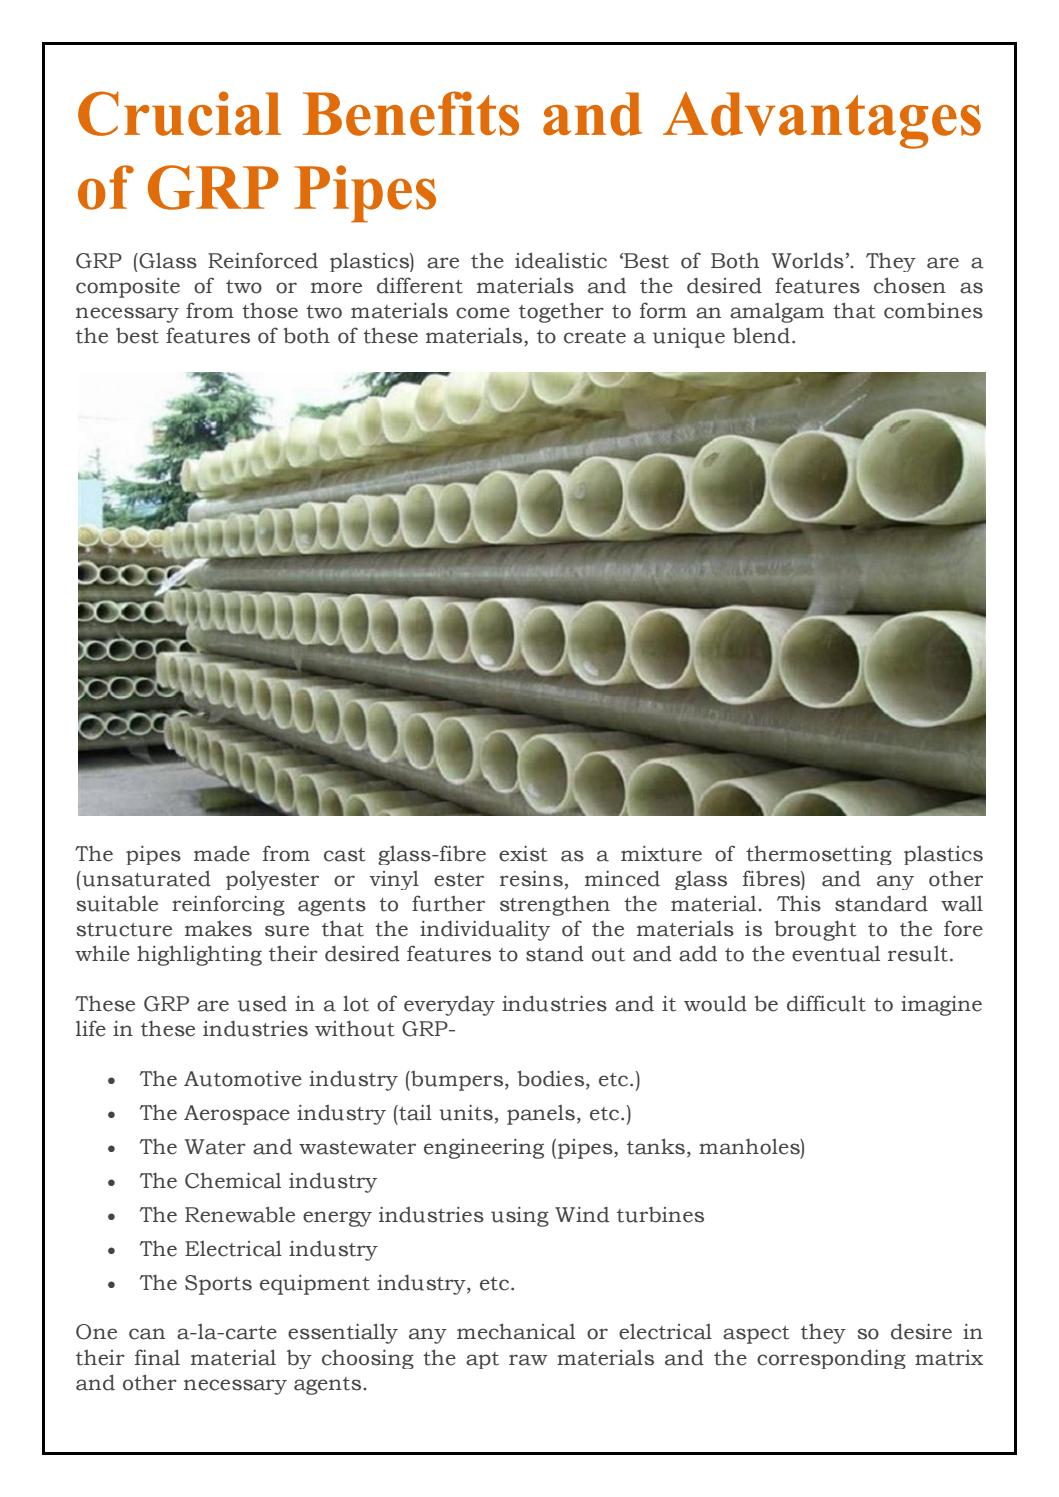 Crucial Benefits and Advantages of GRP Pipes by eppcomposites - issuu